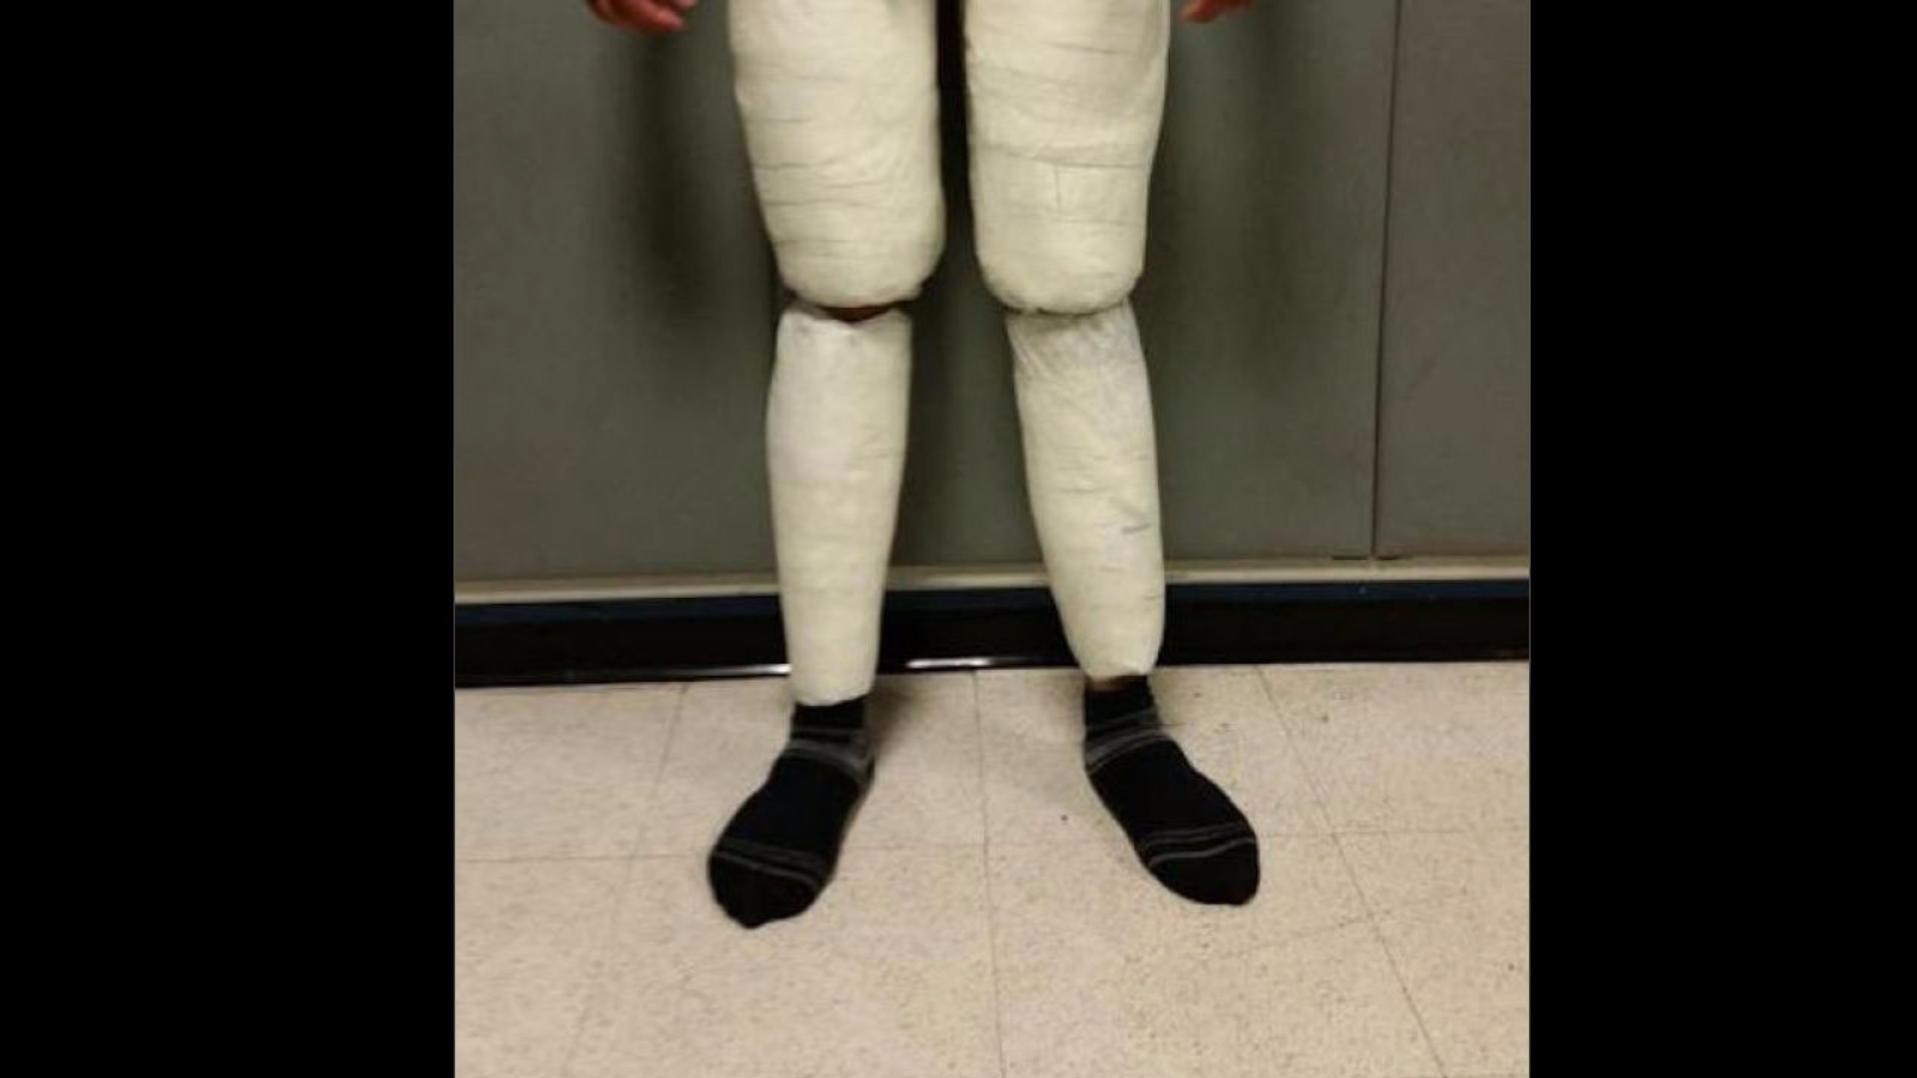 Guy Got Caught In New York Airport With £134,000 Of Cocaine Down His Pants